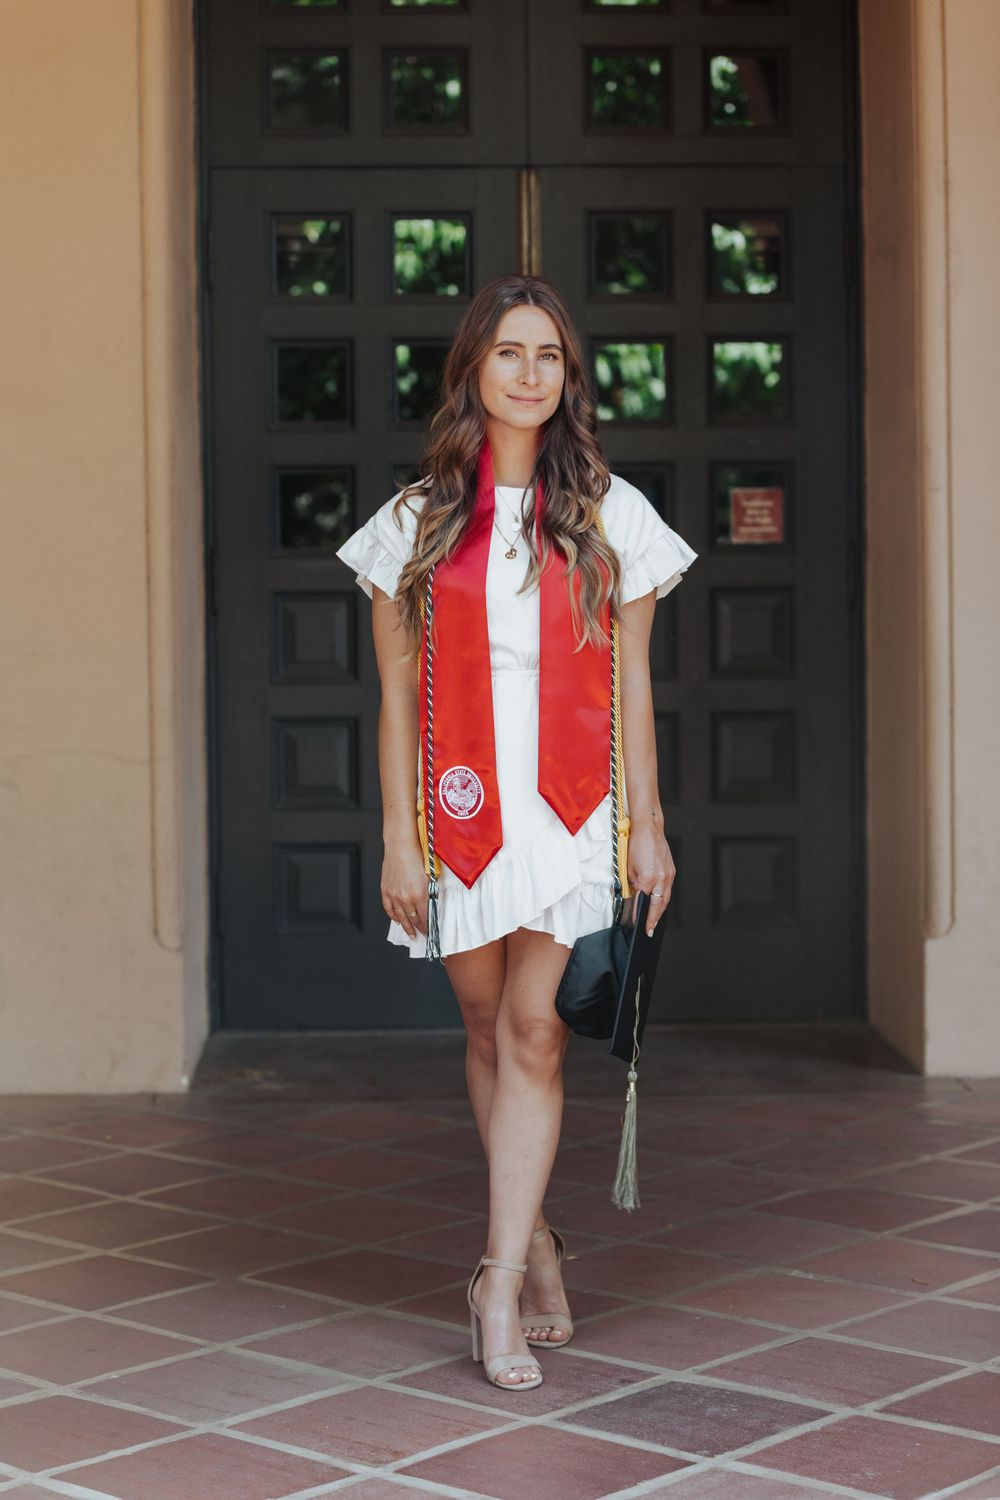 CALIFORNIA STATE UNIVERSITY, CHICO GRADUATION PHOTOS - CHICO, CALIFORNIA bay area graduation photographer chico state